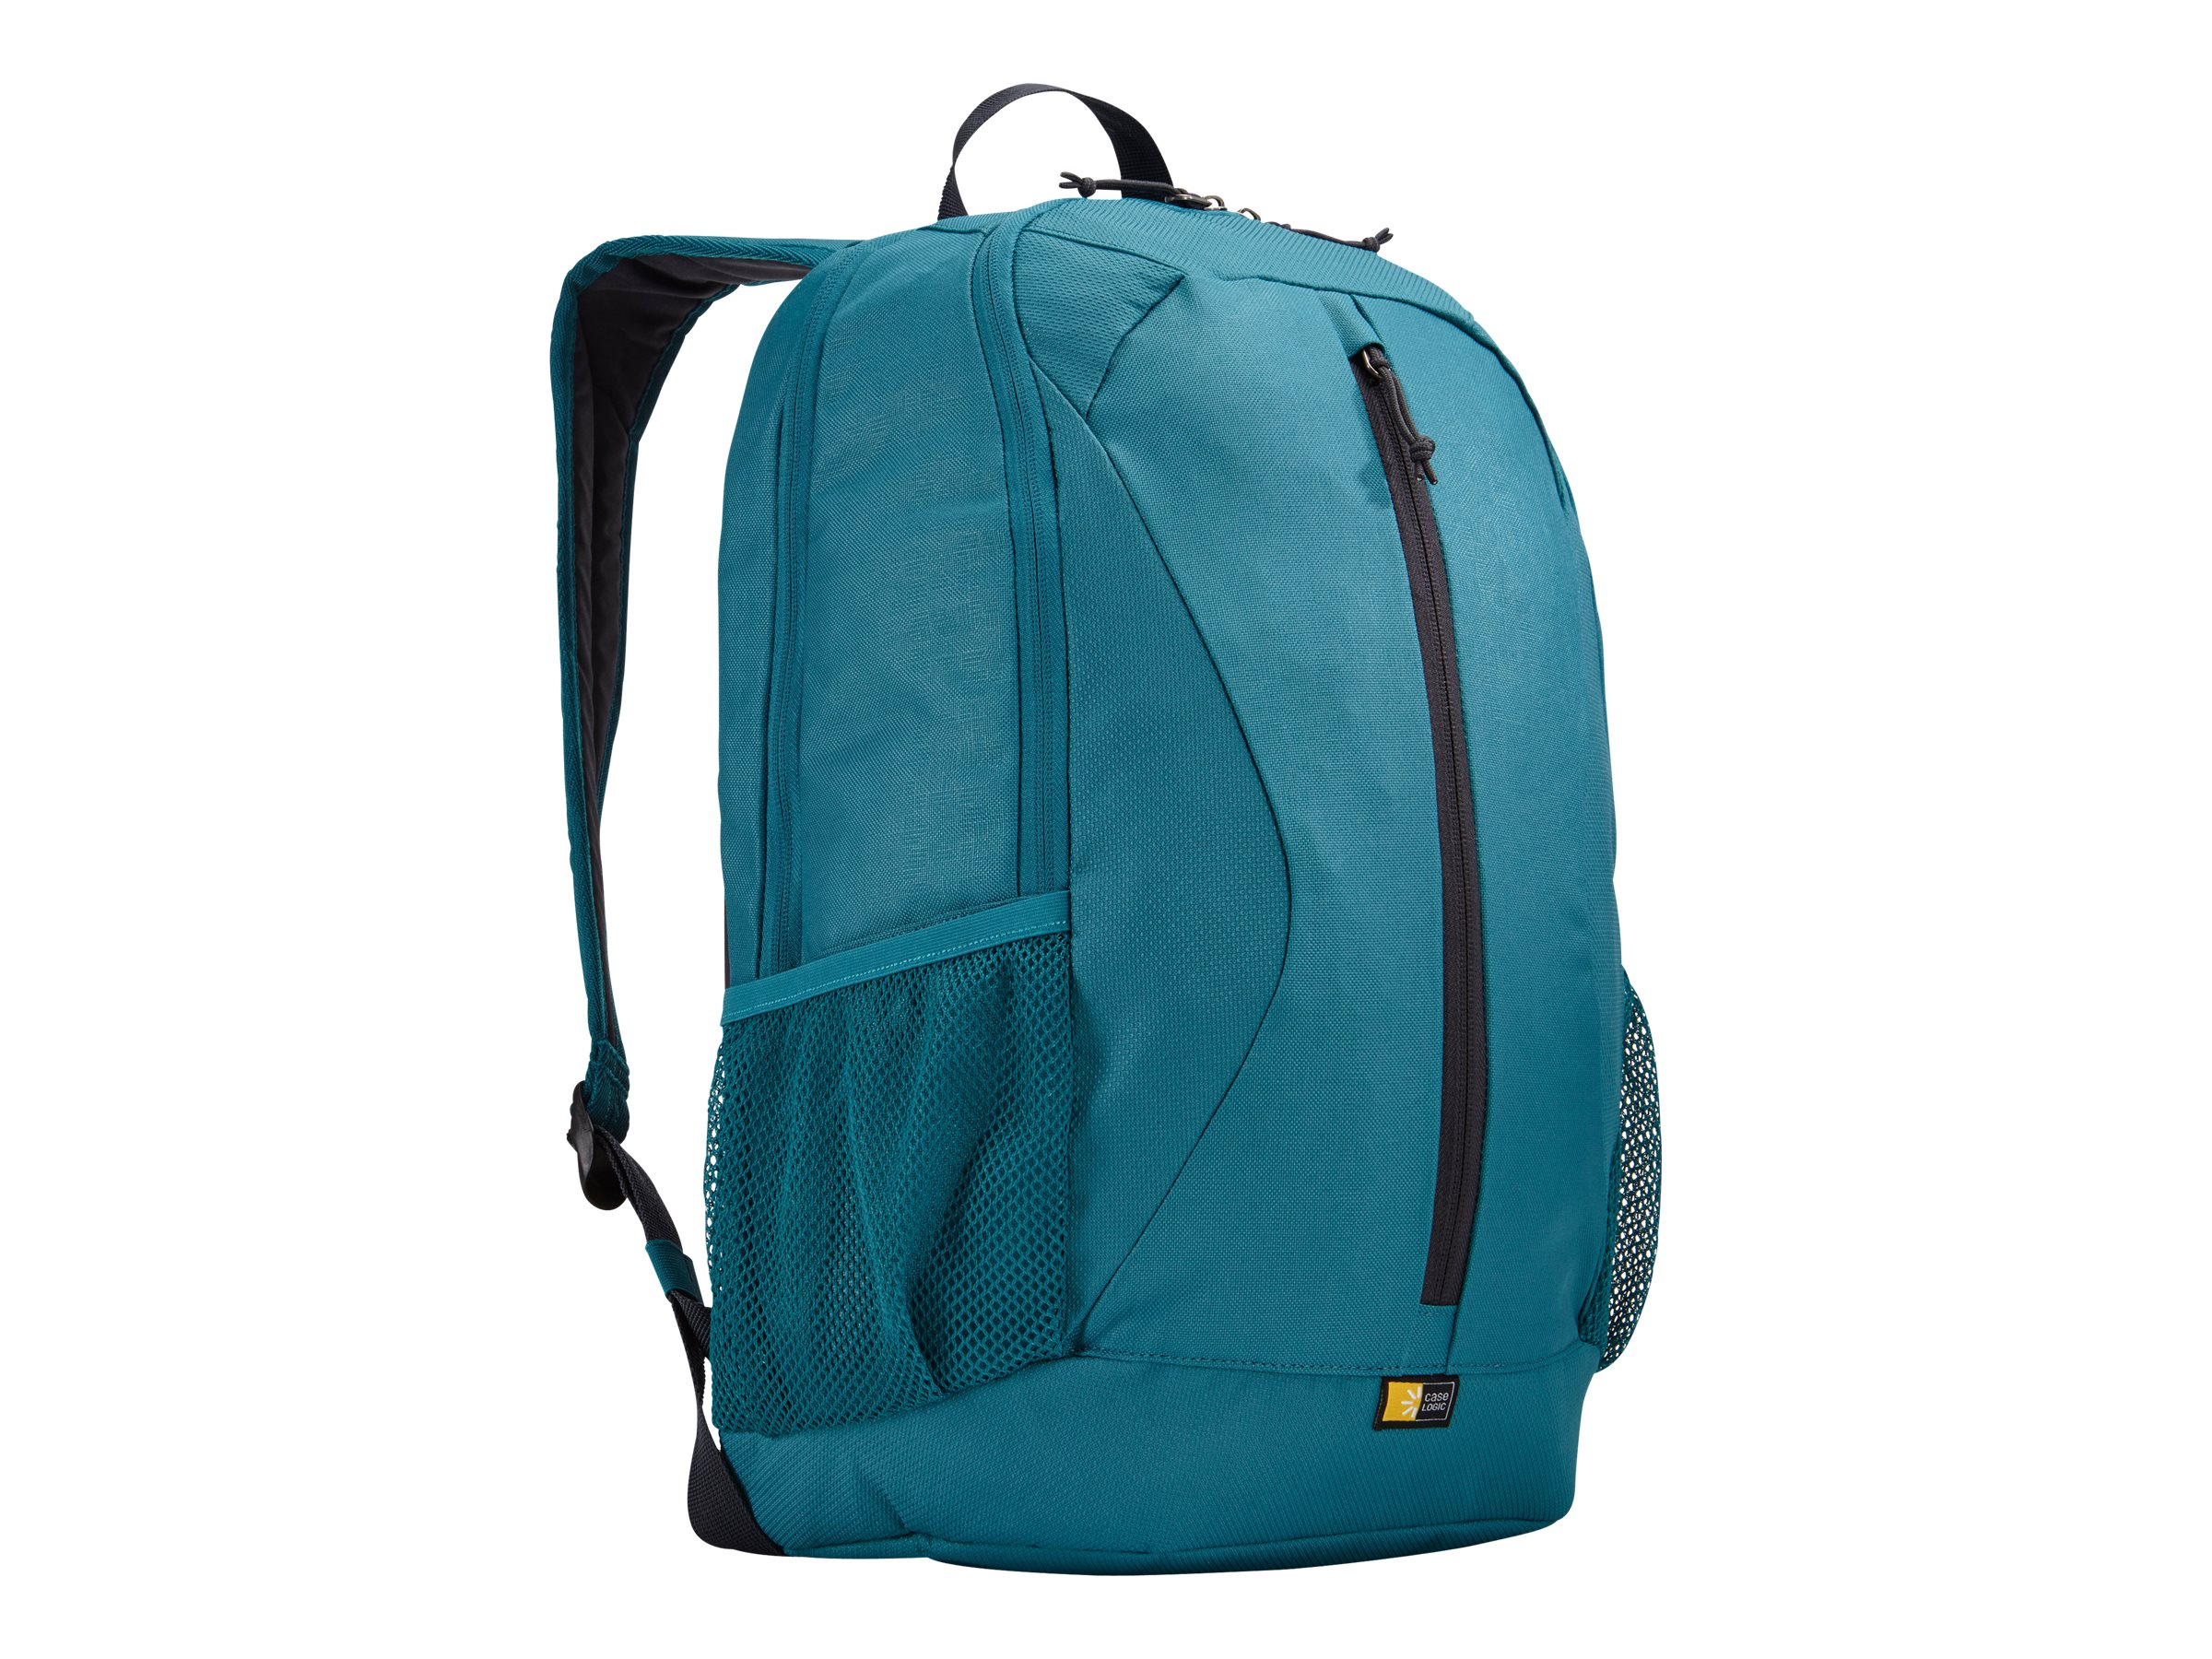 Case Logic 15.6 Laptop Backpack (Hudson), IBIR115HUDSON, 31651199, Carrying Cases - Notebook